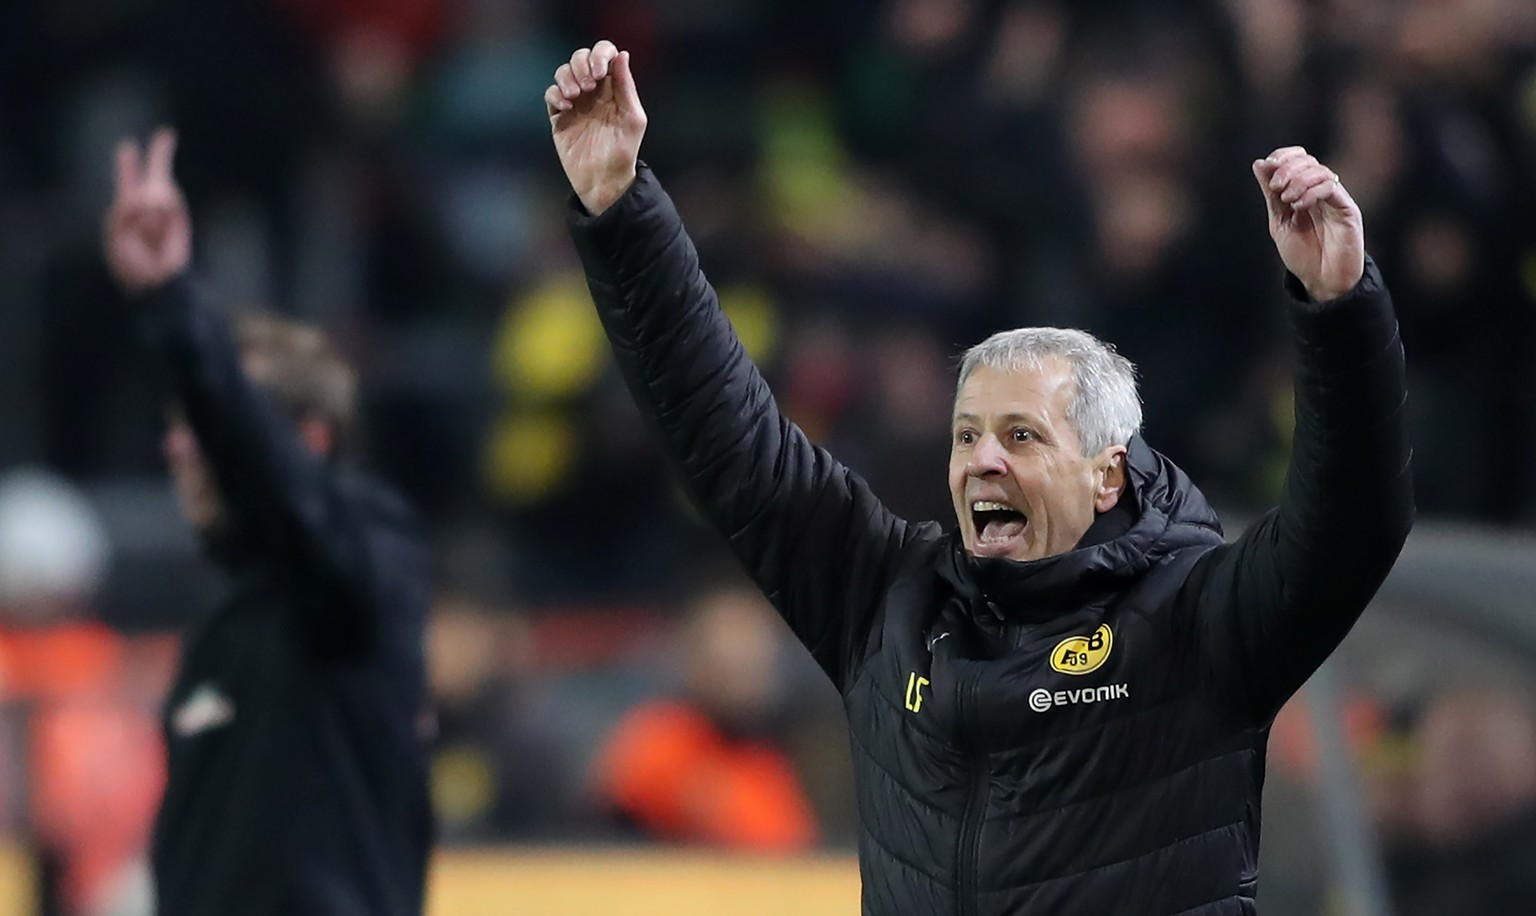 epa07234180 Dortmund's head coach Lucien Favre (R) celebrates during the German Bundesliga soccer match between Borussia Dortmund and SV Werder Bremen in Dortmund, Germany, 15 December 2018.  EPA/FRIEDEMANN VOGEL CONDITIONS - ATTENTION:  The DFL regulations prohibit any use of photographs as image sequences and/or quasi-video.